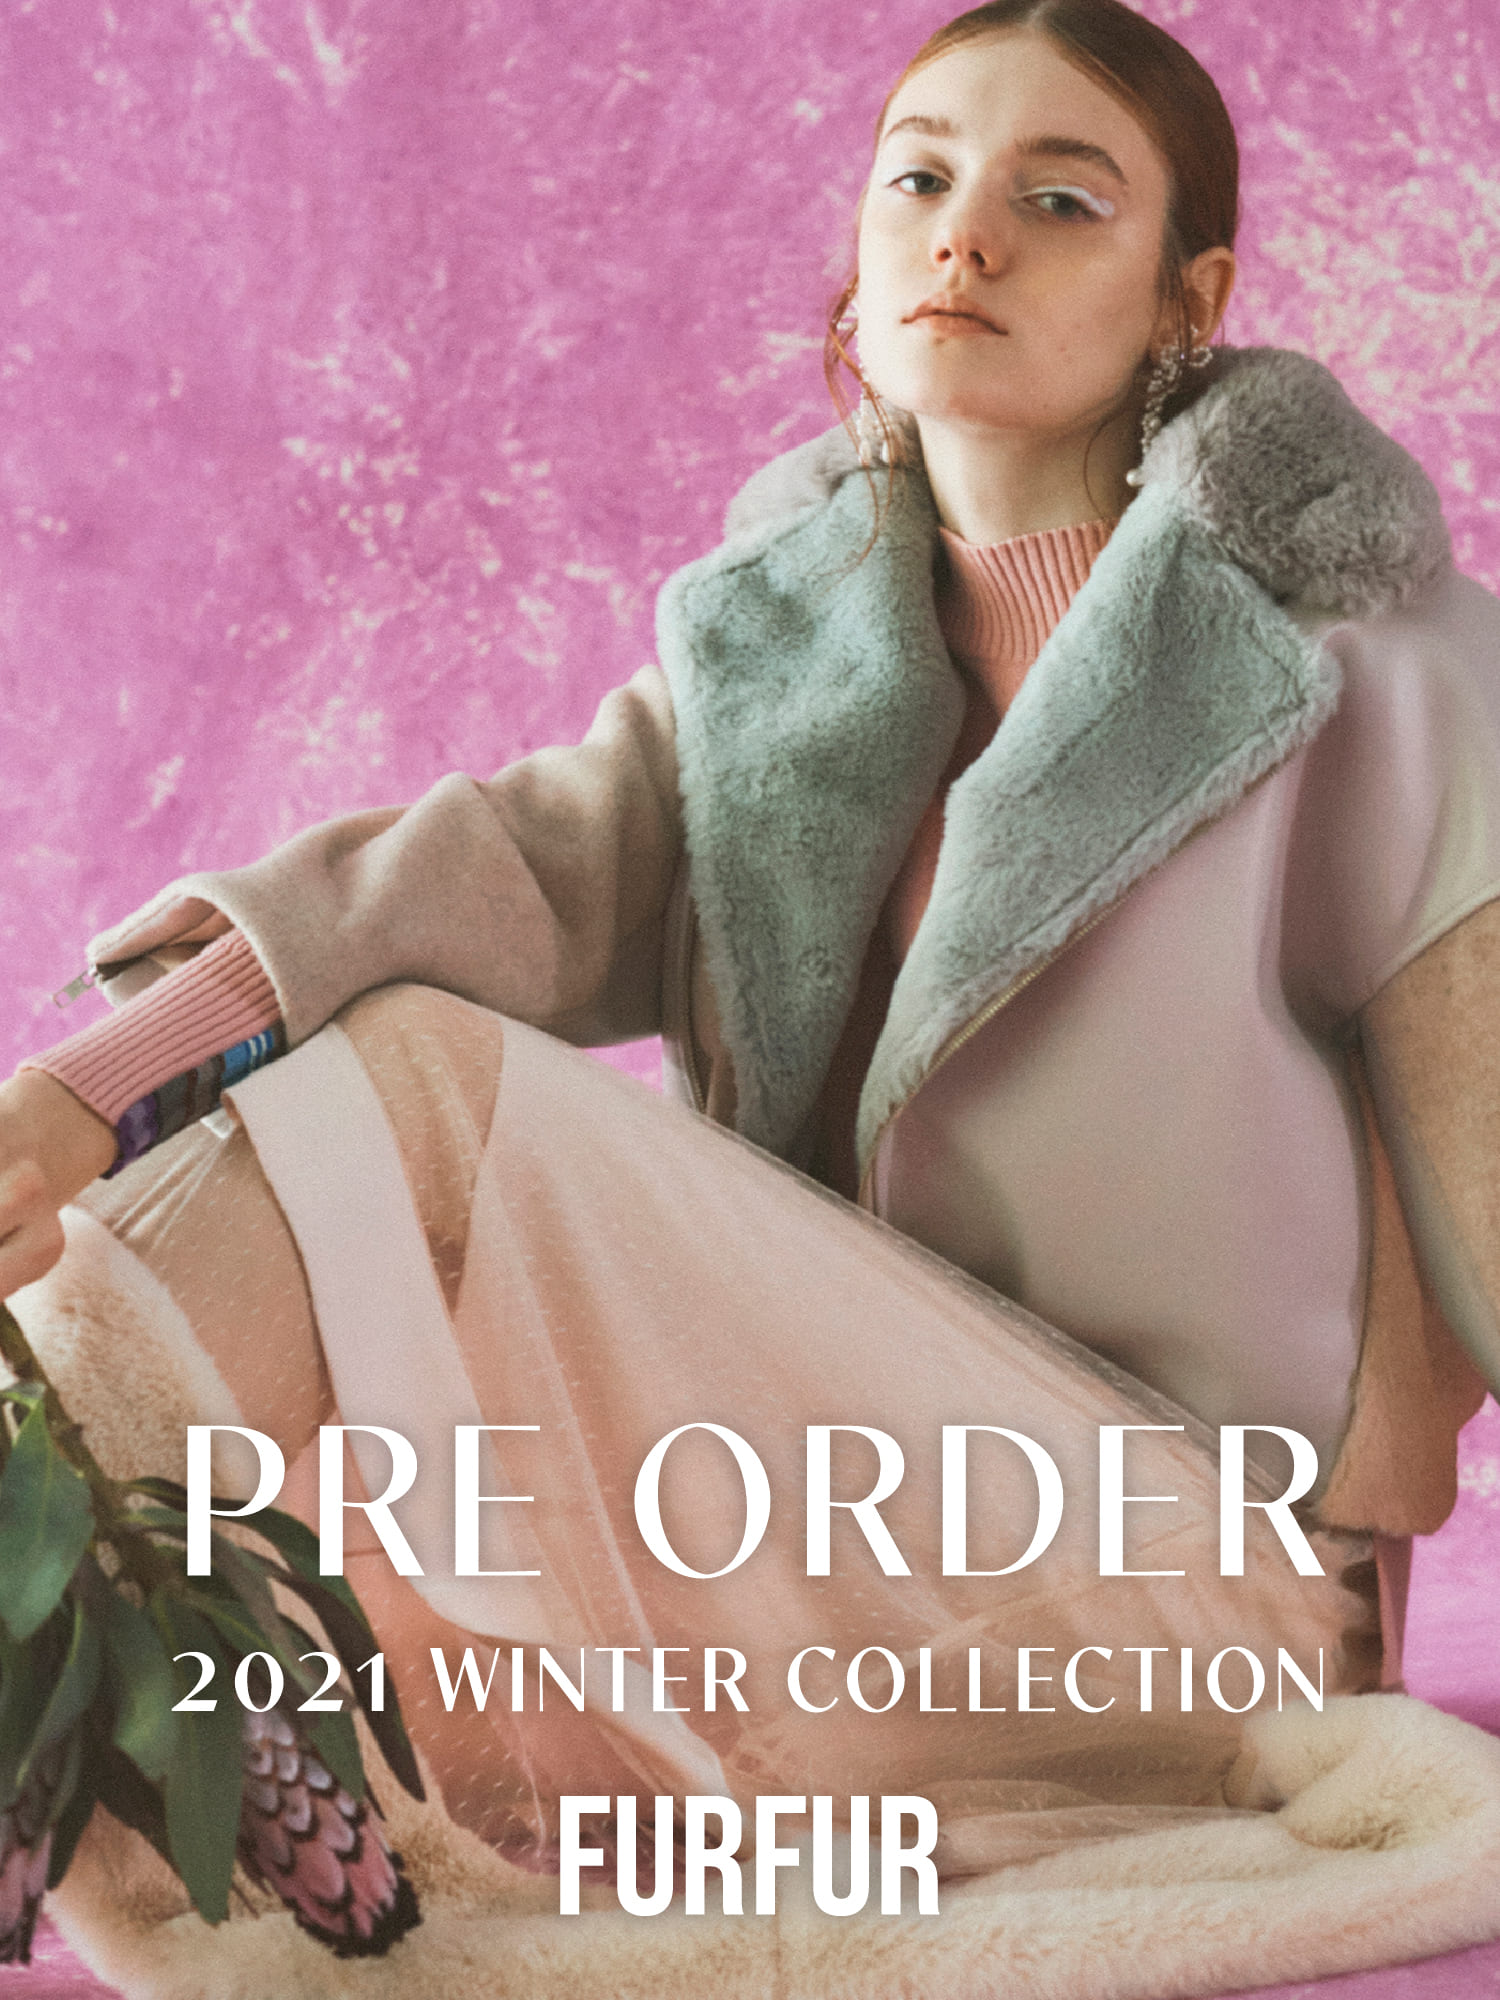 PRE ORDER 2021 WINTER COLLECTION